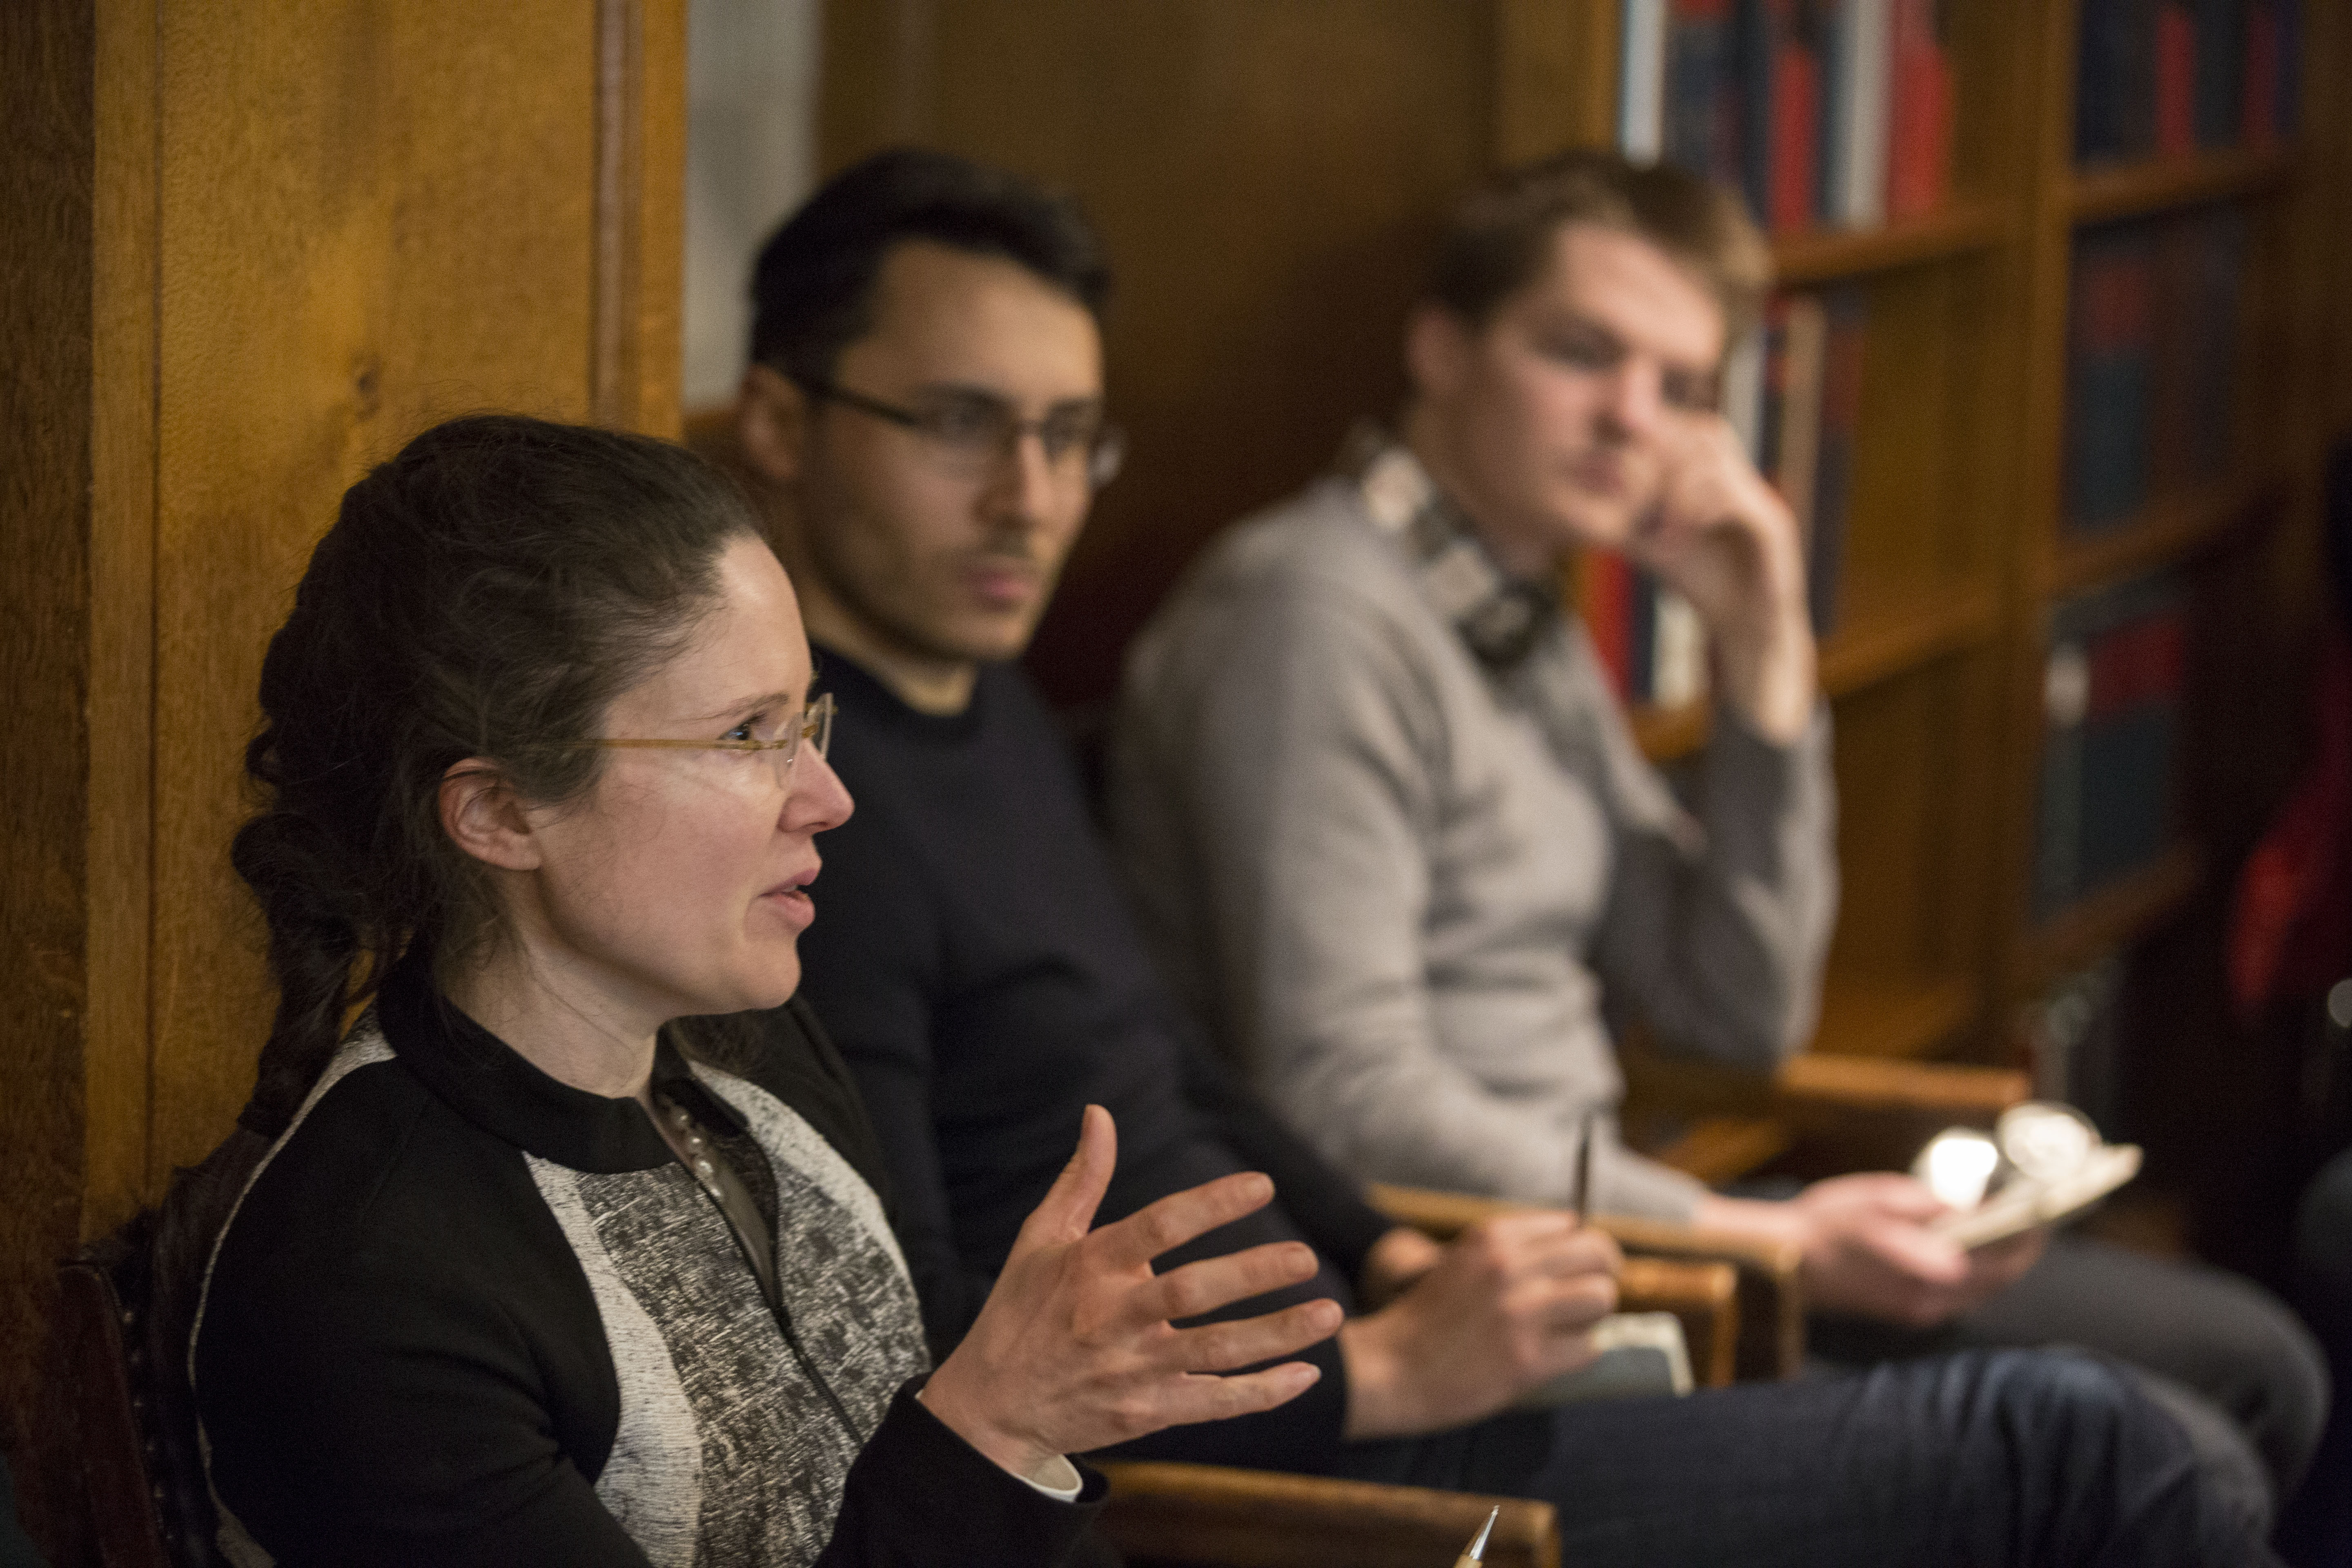 Yale Epidemiology Prof. Alison P. Galvani asking a question